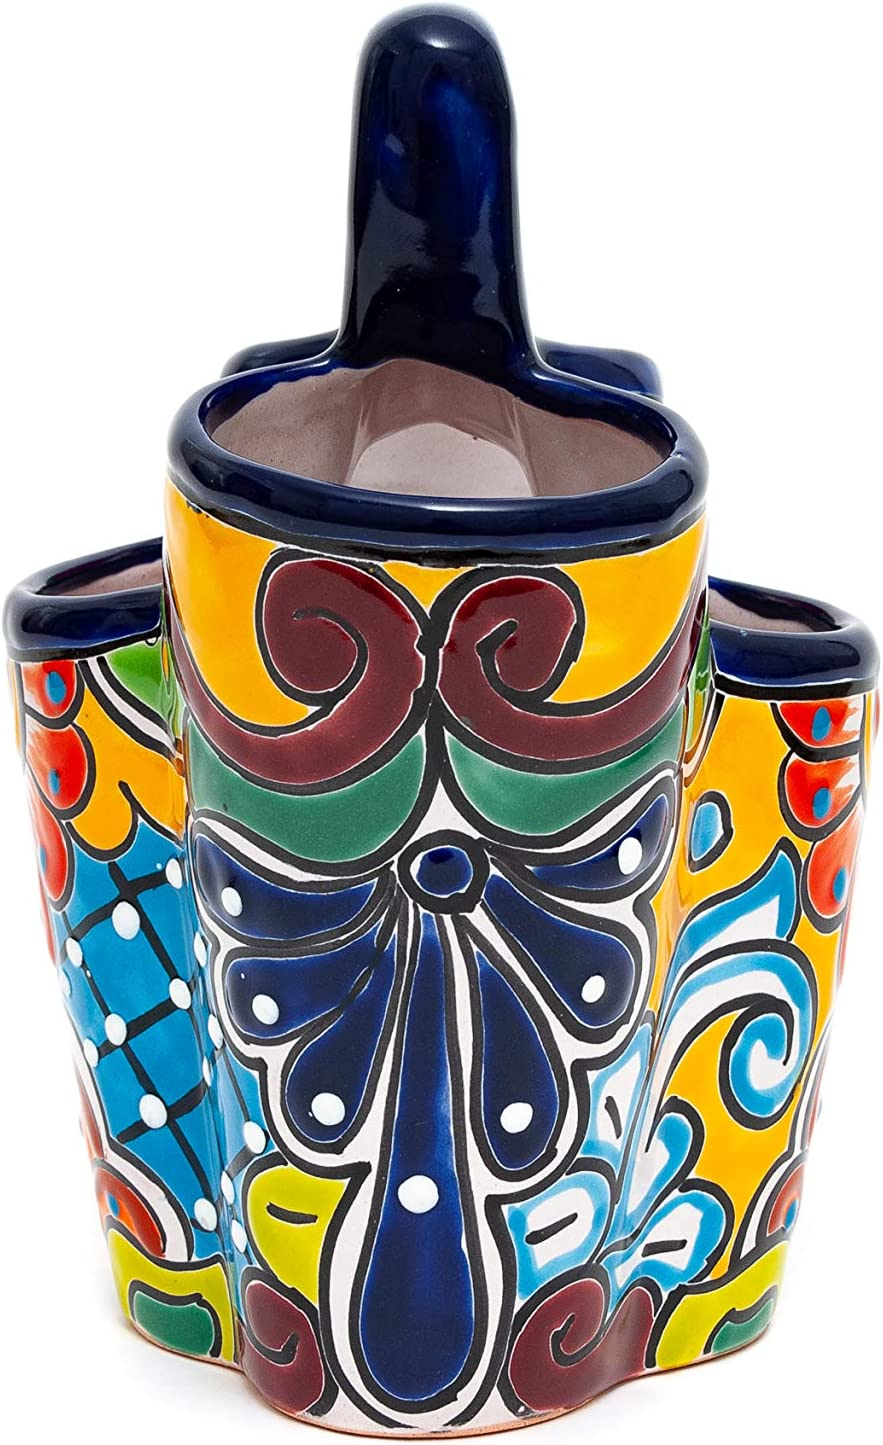 Storage Organization Cobalt Blue Multi Jayde N Grey Talavera Hand Painted Ceramic Utensil Holder Canister Crock For Cooking Spoons An Organized Colorful Kitchen Dining